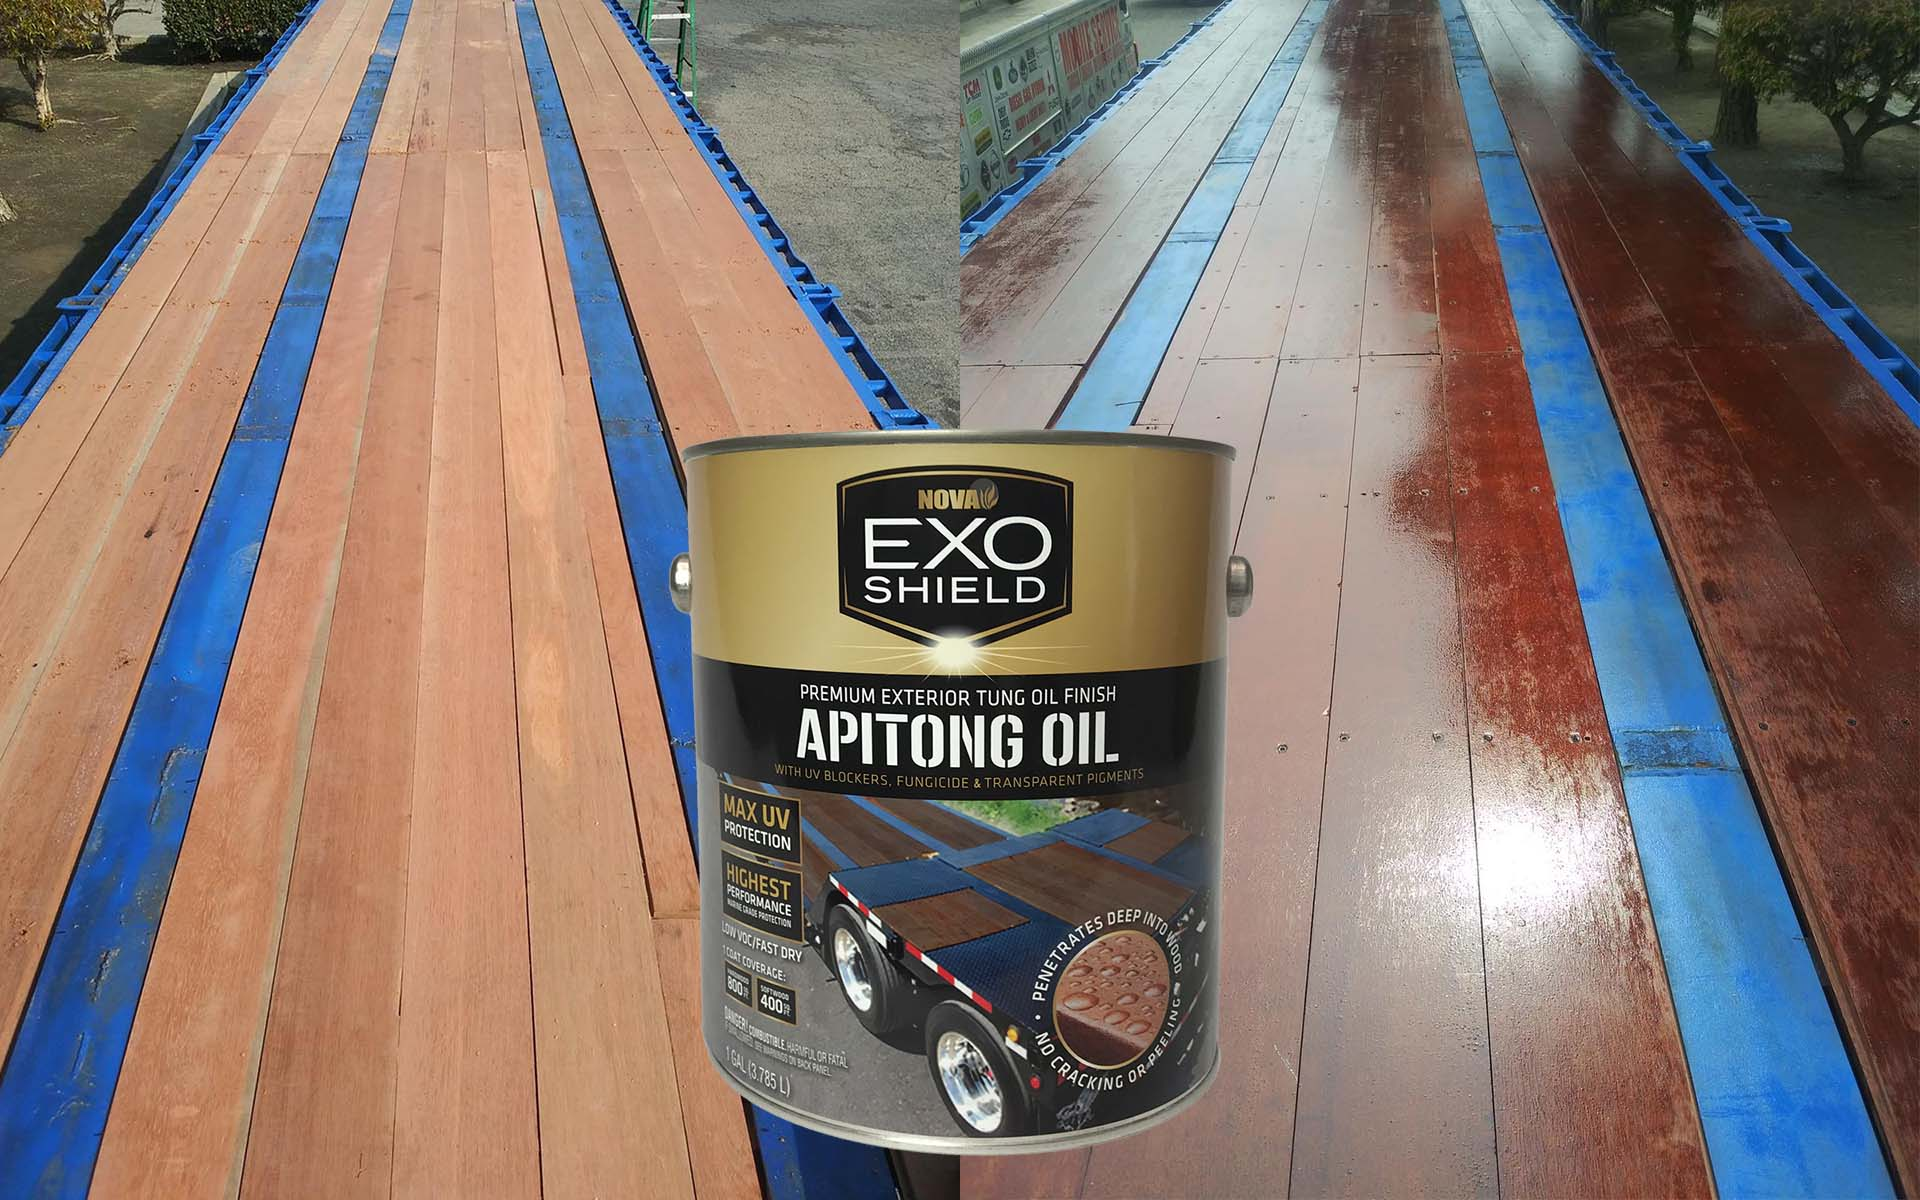 2. side-by-side-genuine-apitong-protected-exoshield-apitong-oil-1.jpg